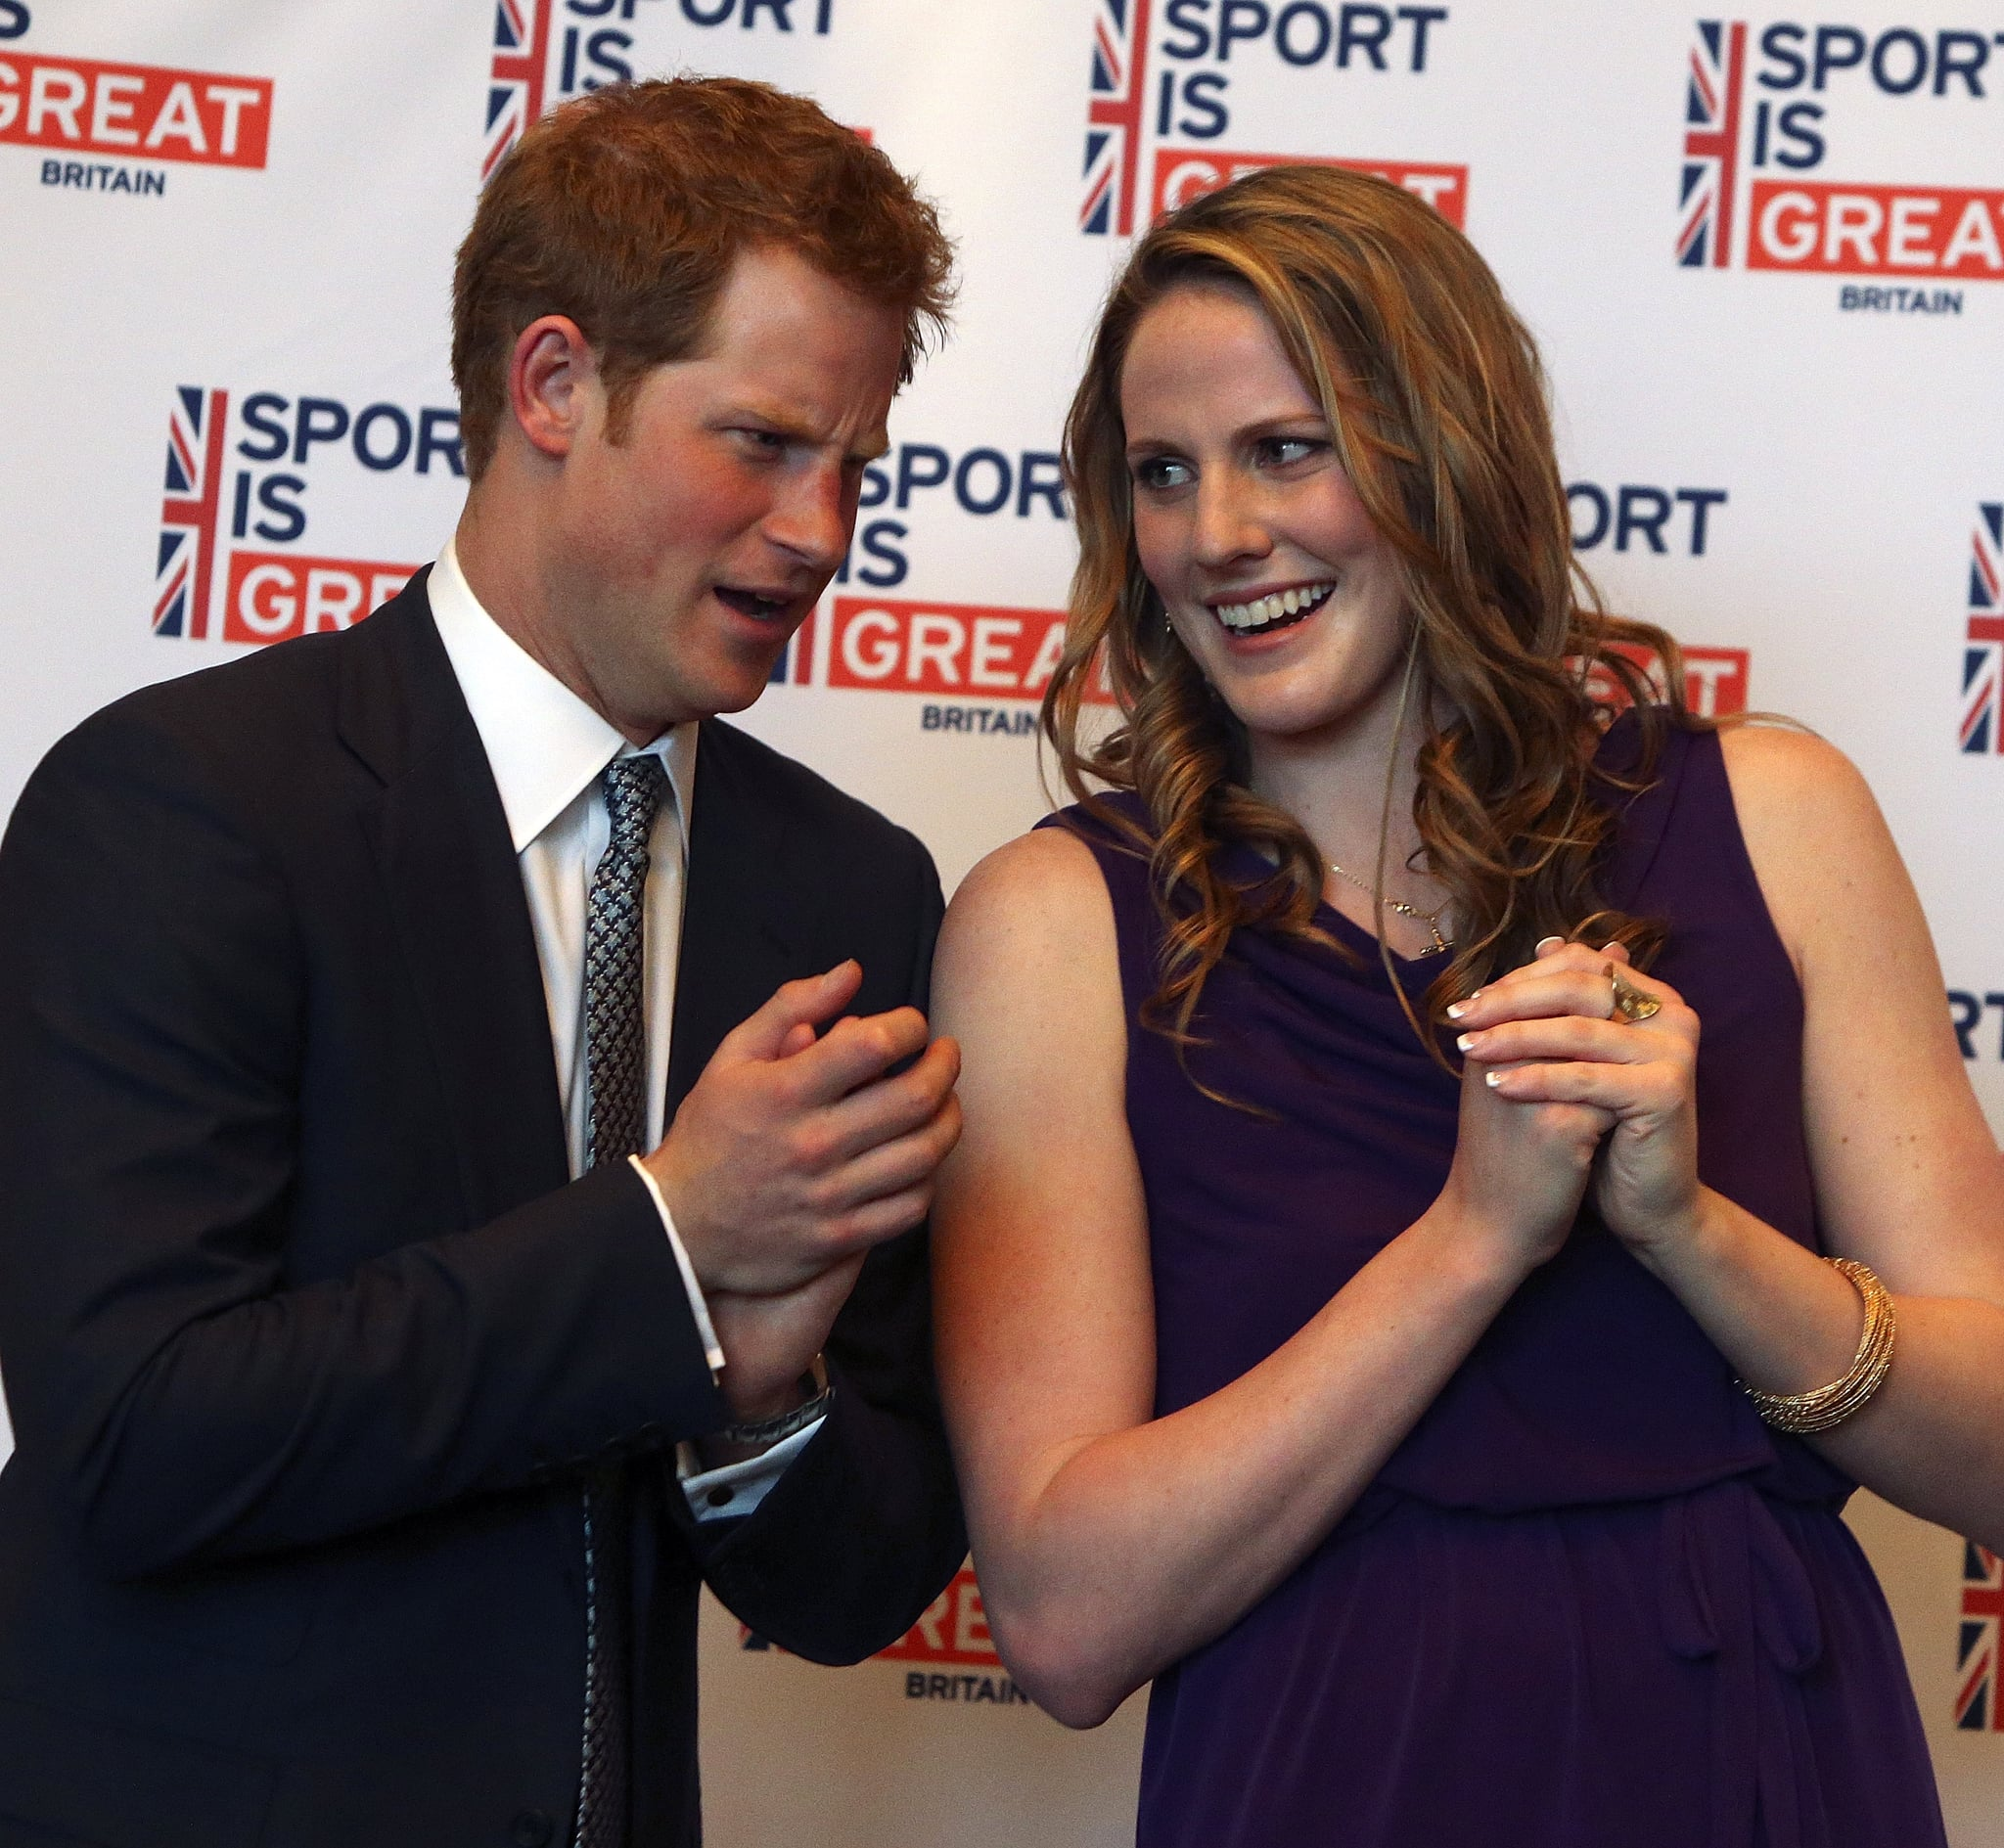 Prince Harry chatted with Missy Franklin at an event in Denver.